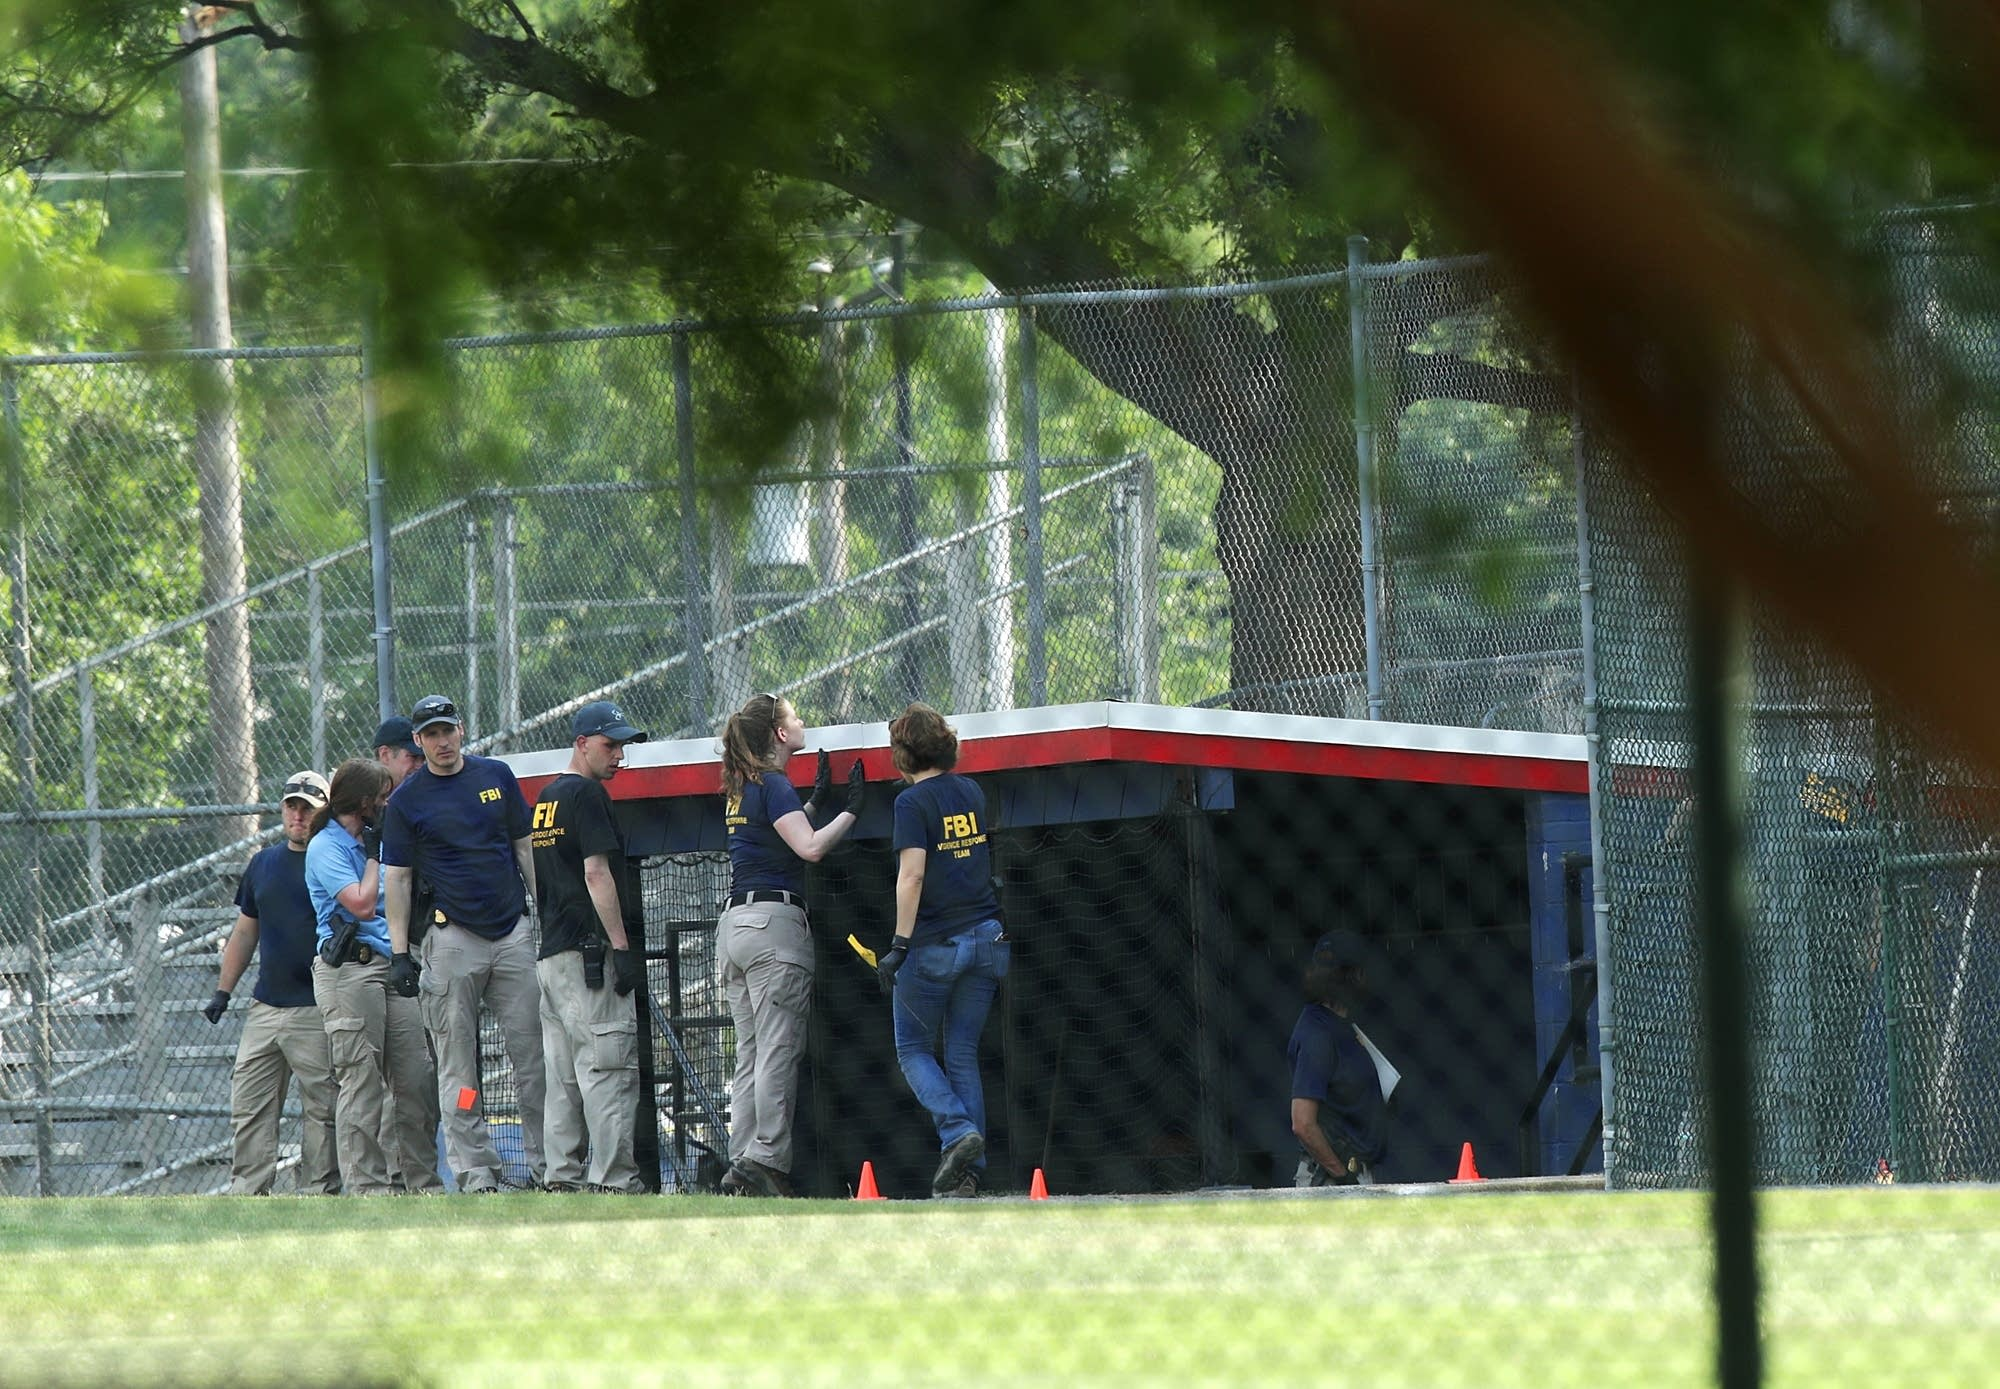 Scalise Is Still In Critical Condition, But Doctors Are Optimistic